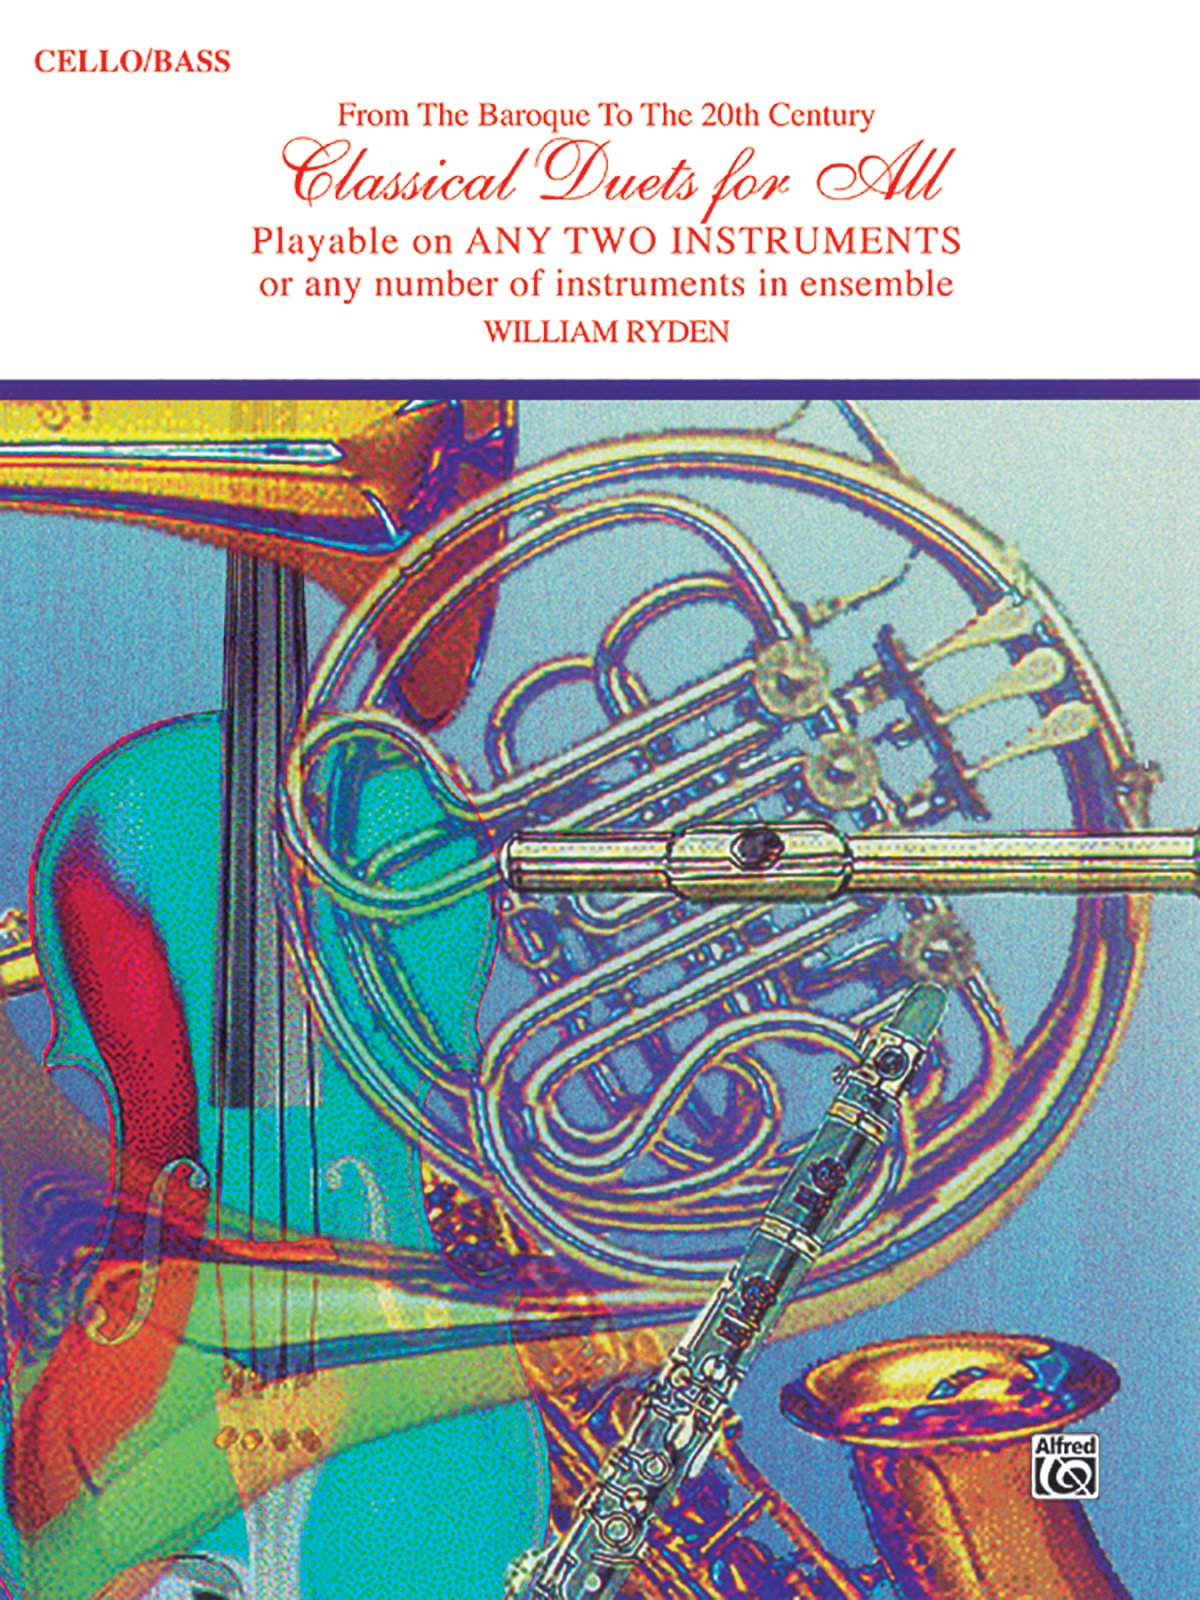 Classical Duets for All (From the Baroque to the 20th Century): Cello/Bass (Classical Instrumental Ensembles for All)